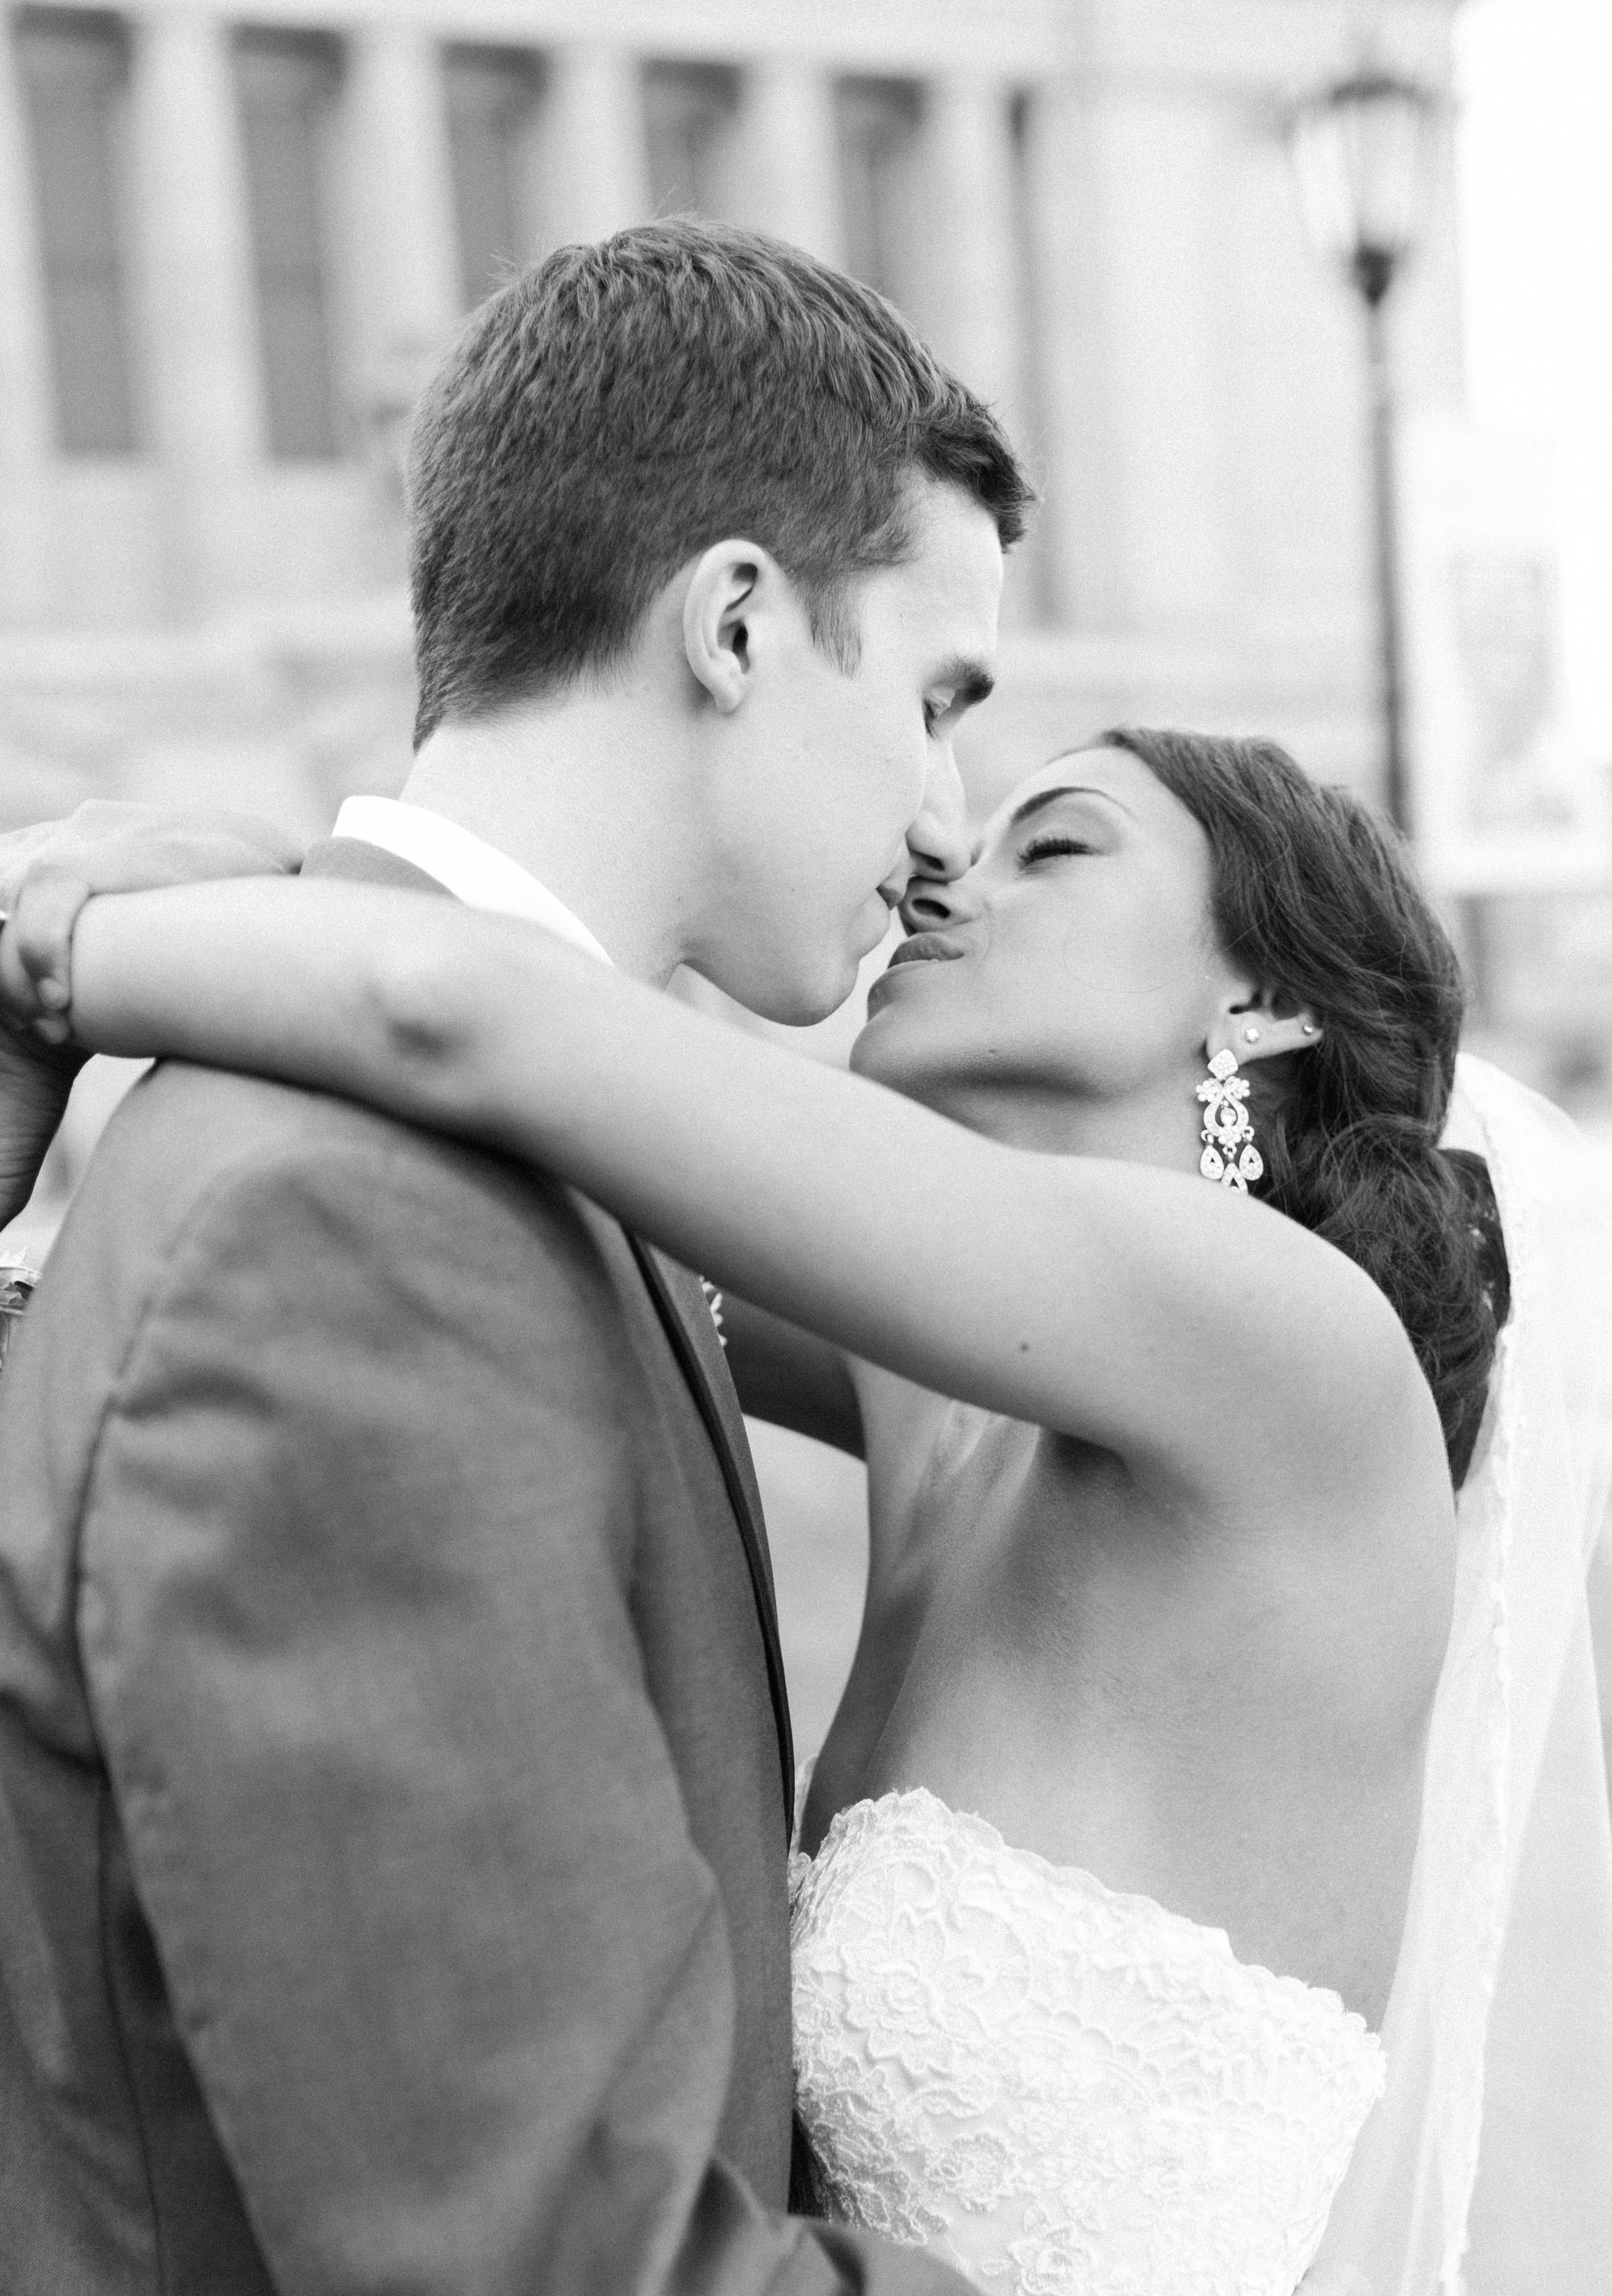 copyright| Ashley Giffin Photography  multicultural wedding, pretty brown bride, jewish wedding, romantic wedding photography, young love, pittsburgh, stolen moment, the almost kiss